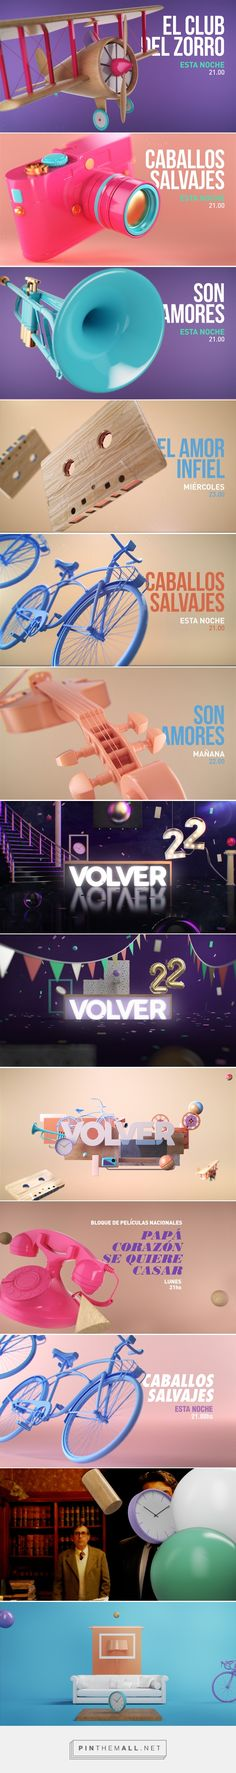 CANAL VOLVER on Behance - created via https://pinthemall.net